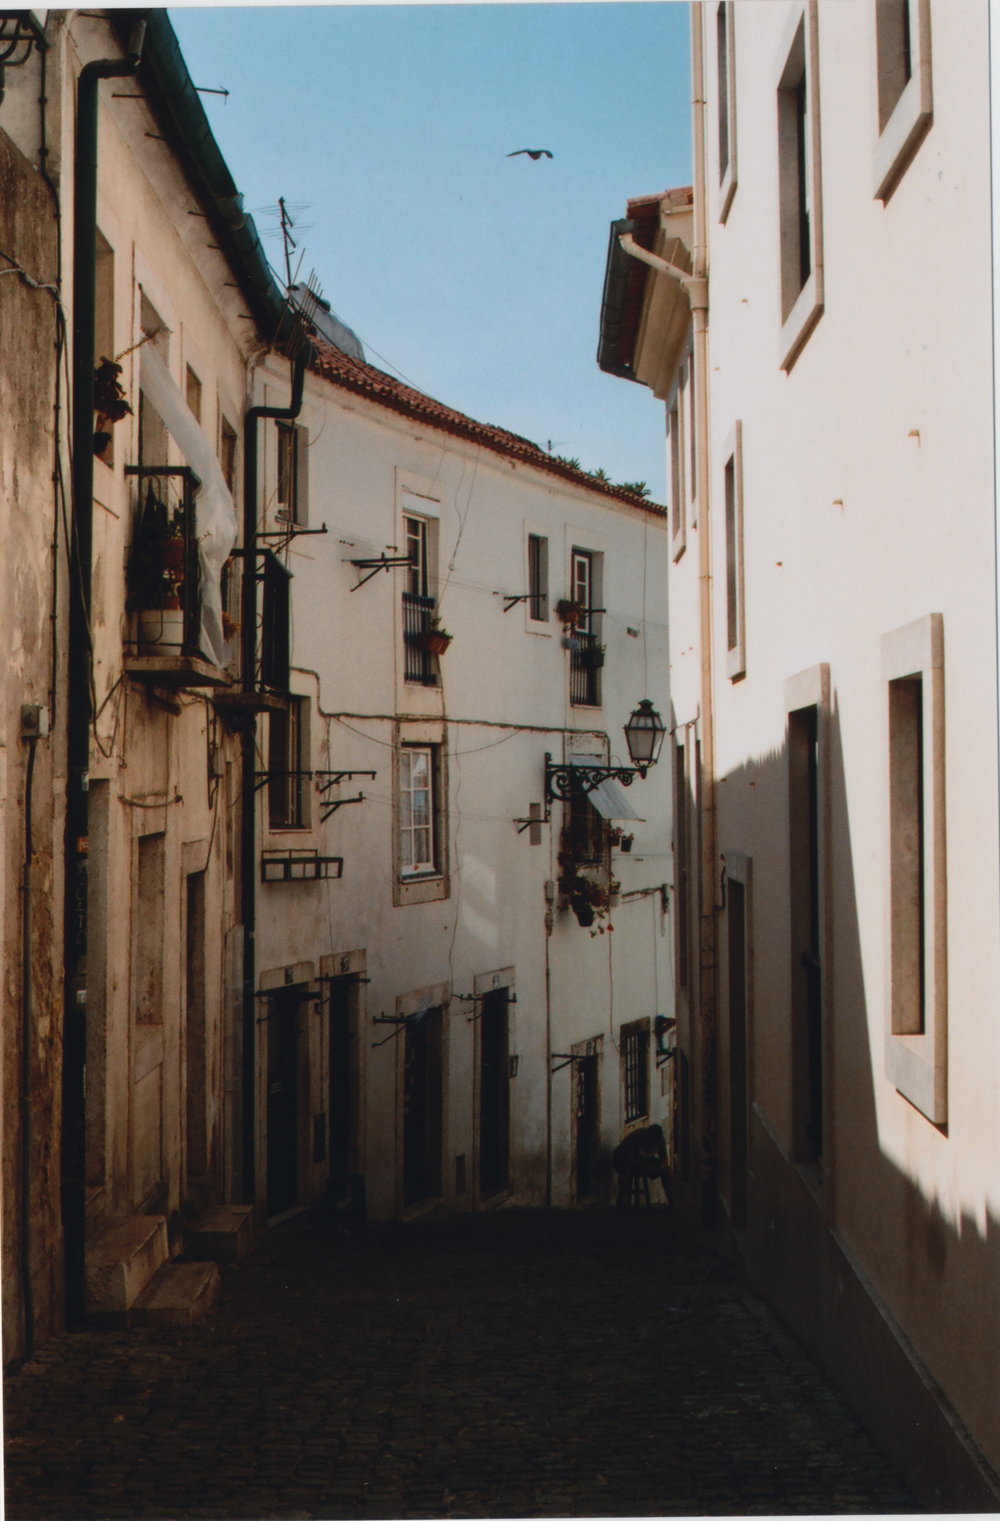 Lisbon is a labryinth of alleyways